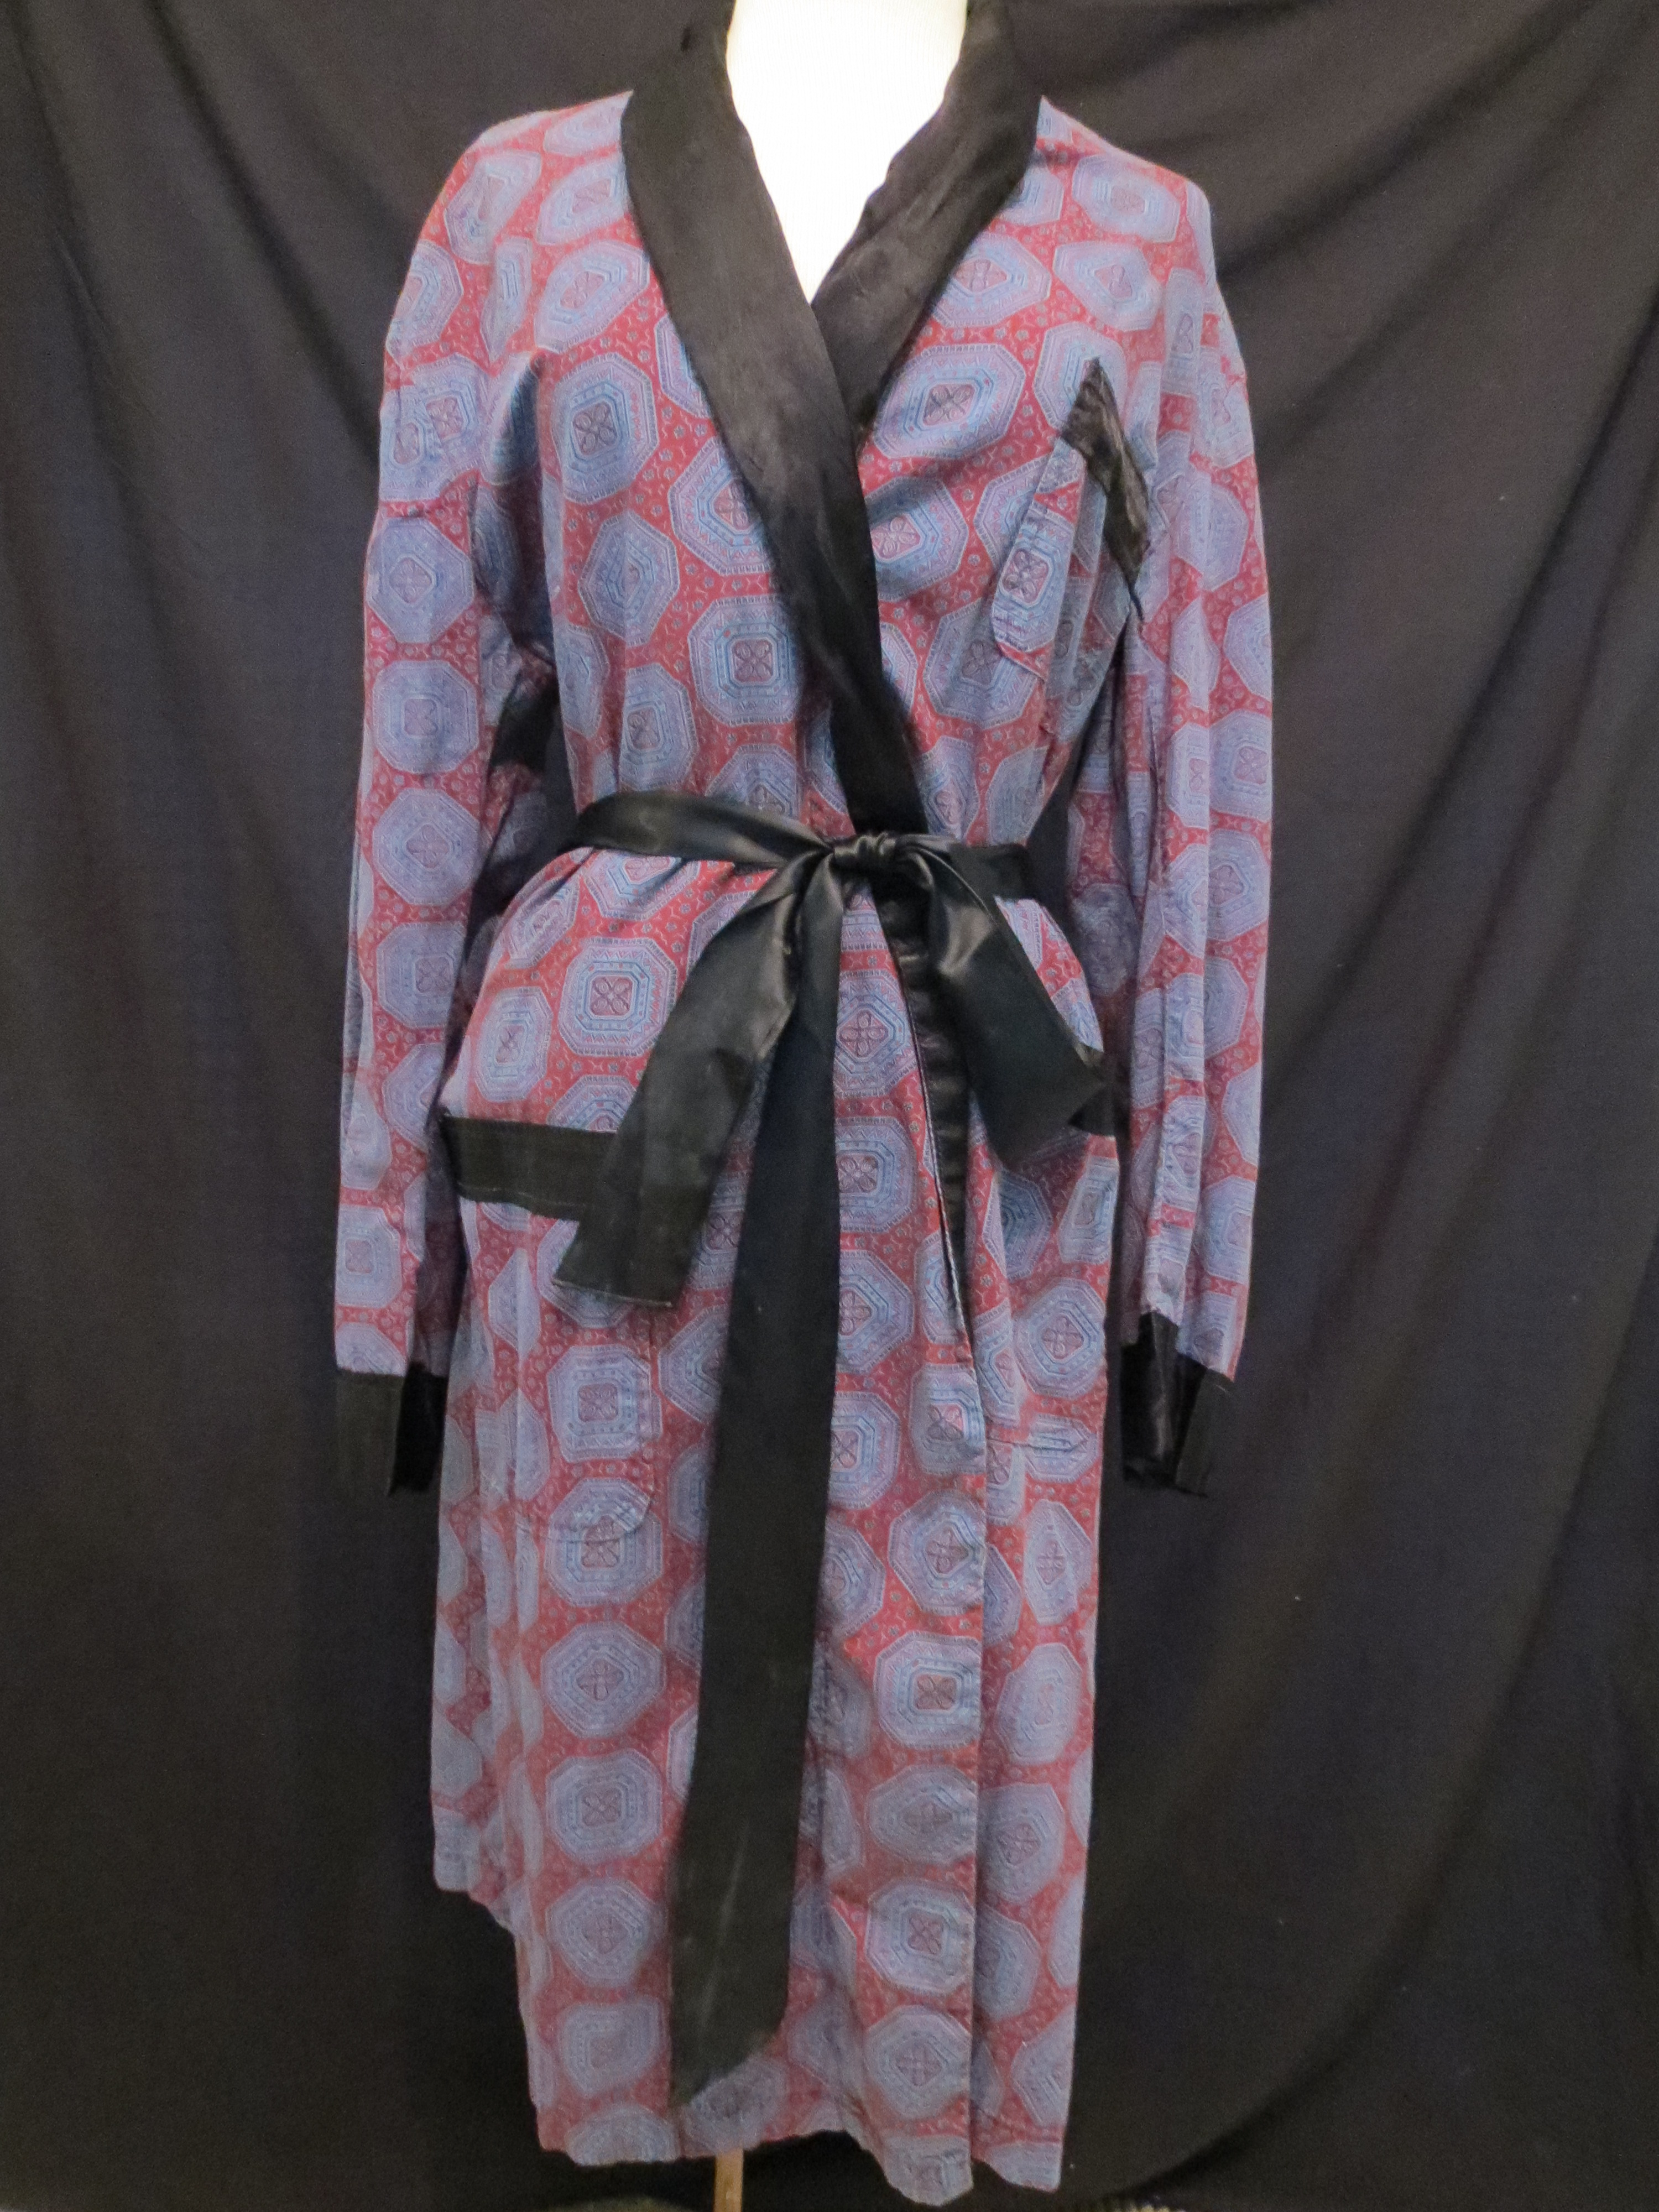 MY SECOND MEN'S BATHROBE FROM THE '50'S - '60'S, WITH A COMPLETELY DIFFERENT VIBE